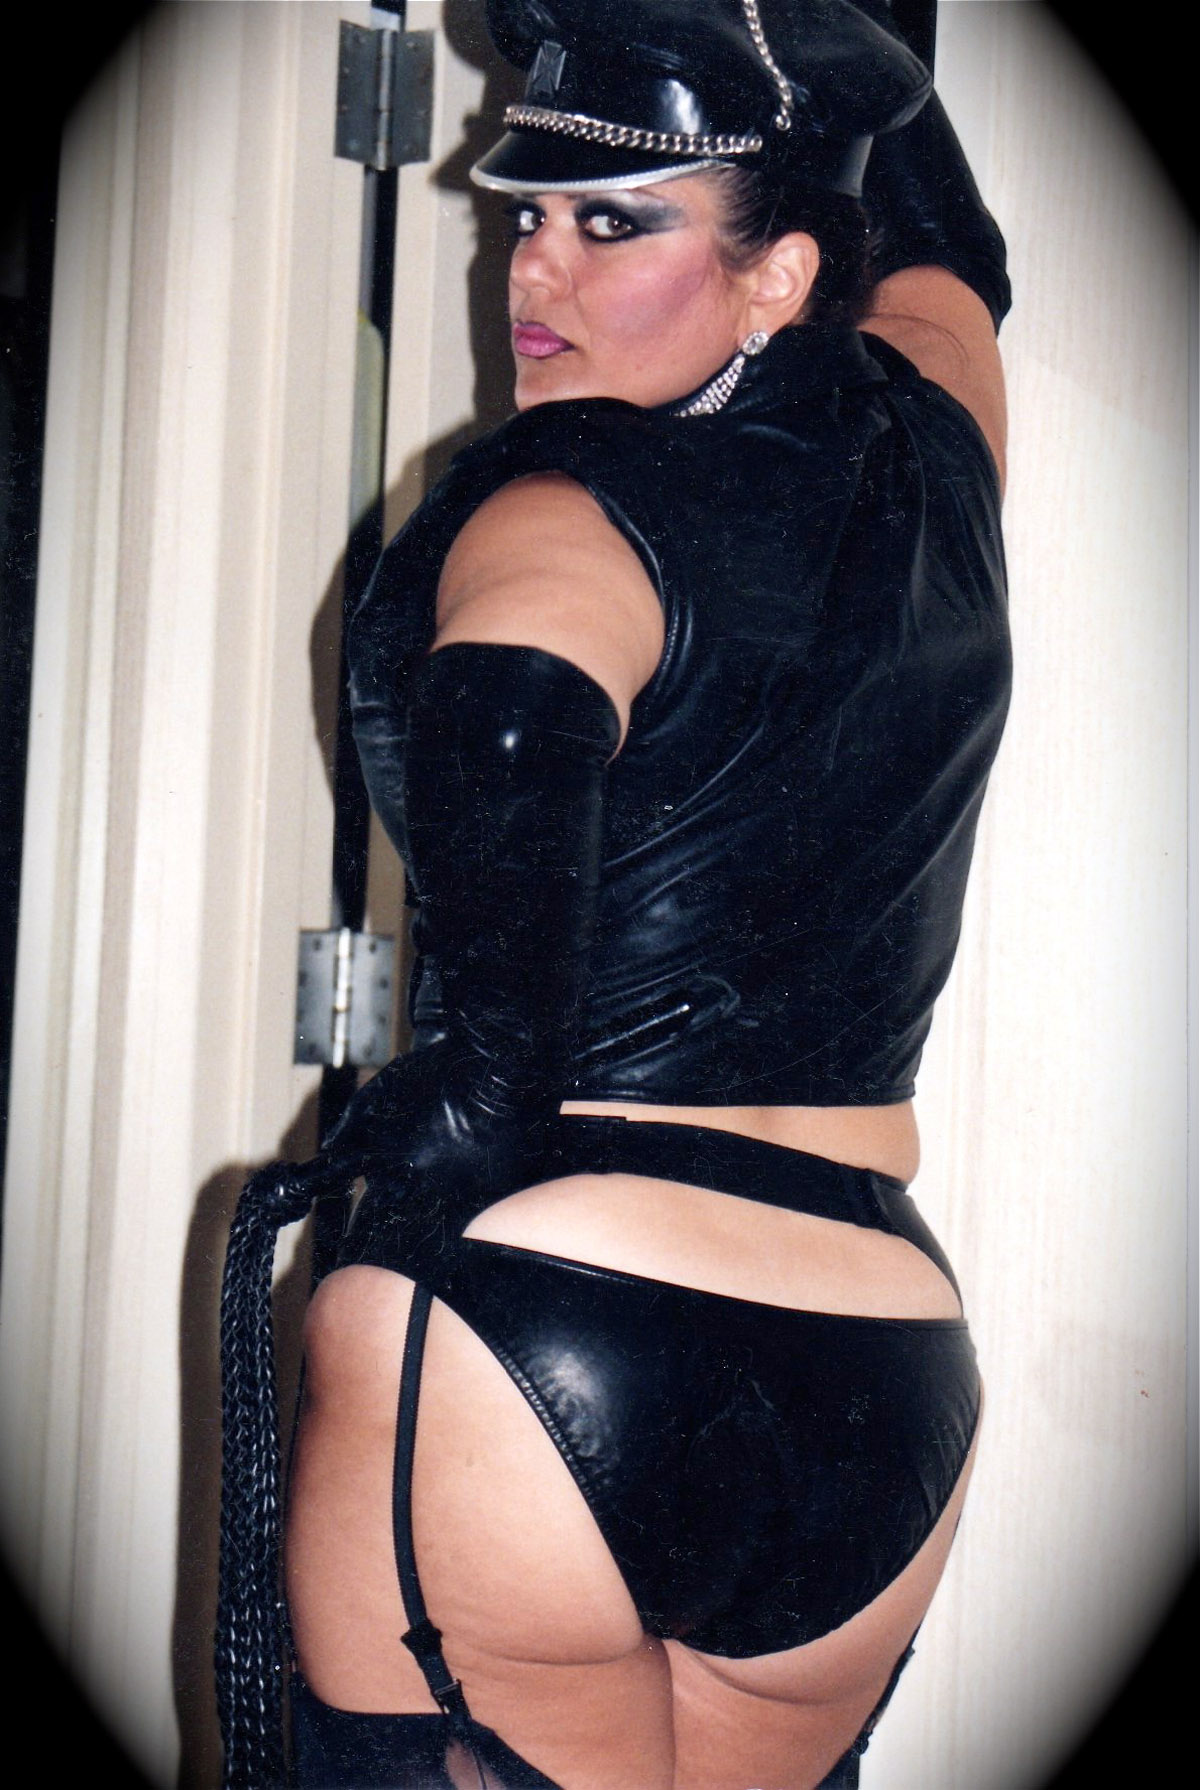 Leather Femdom  Latex Mistress  Leather Dominatrix -1998